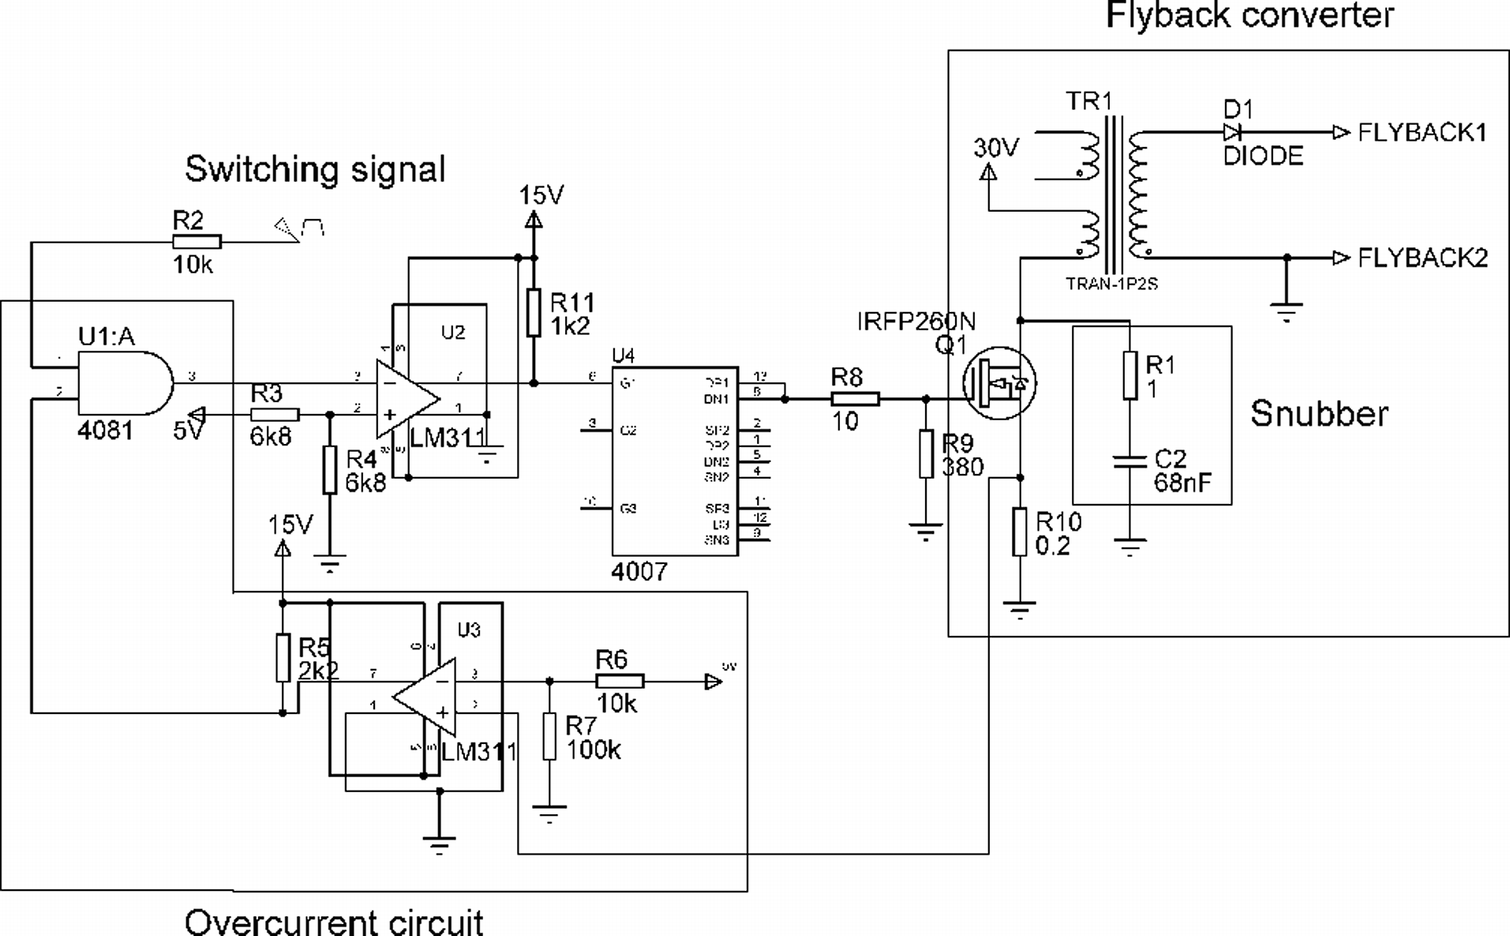 Development and Testing of a High Intensity Electrical